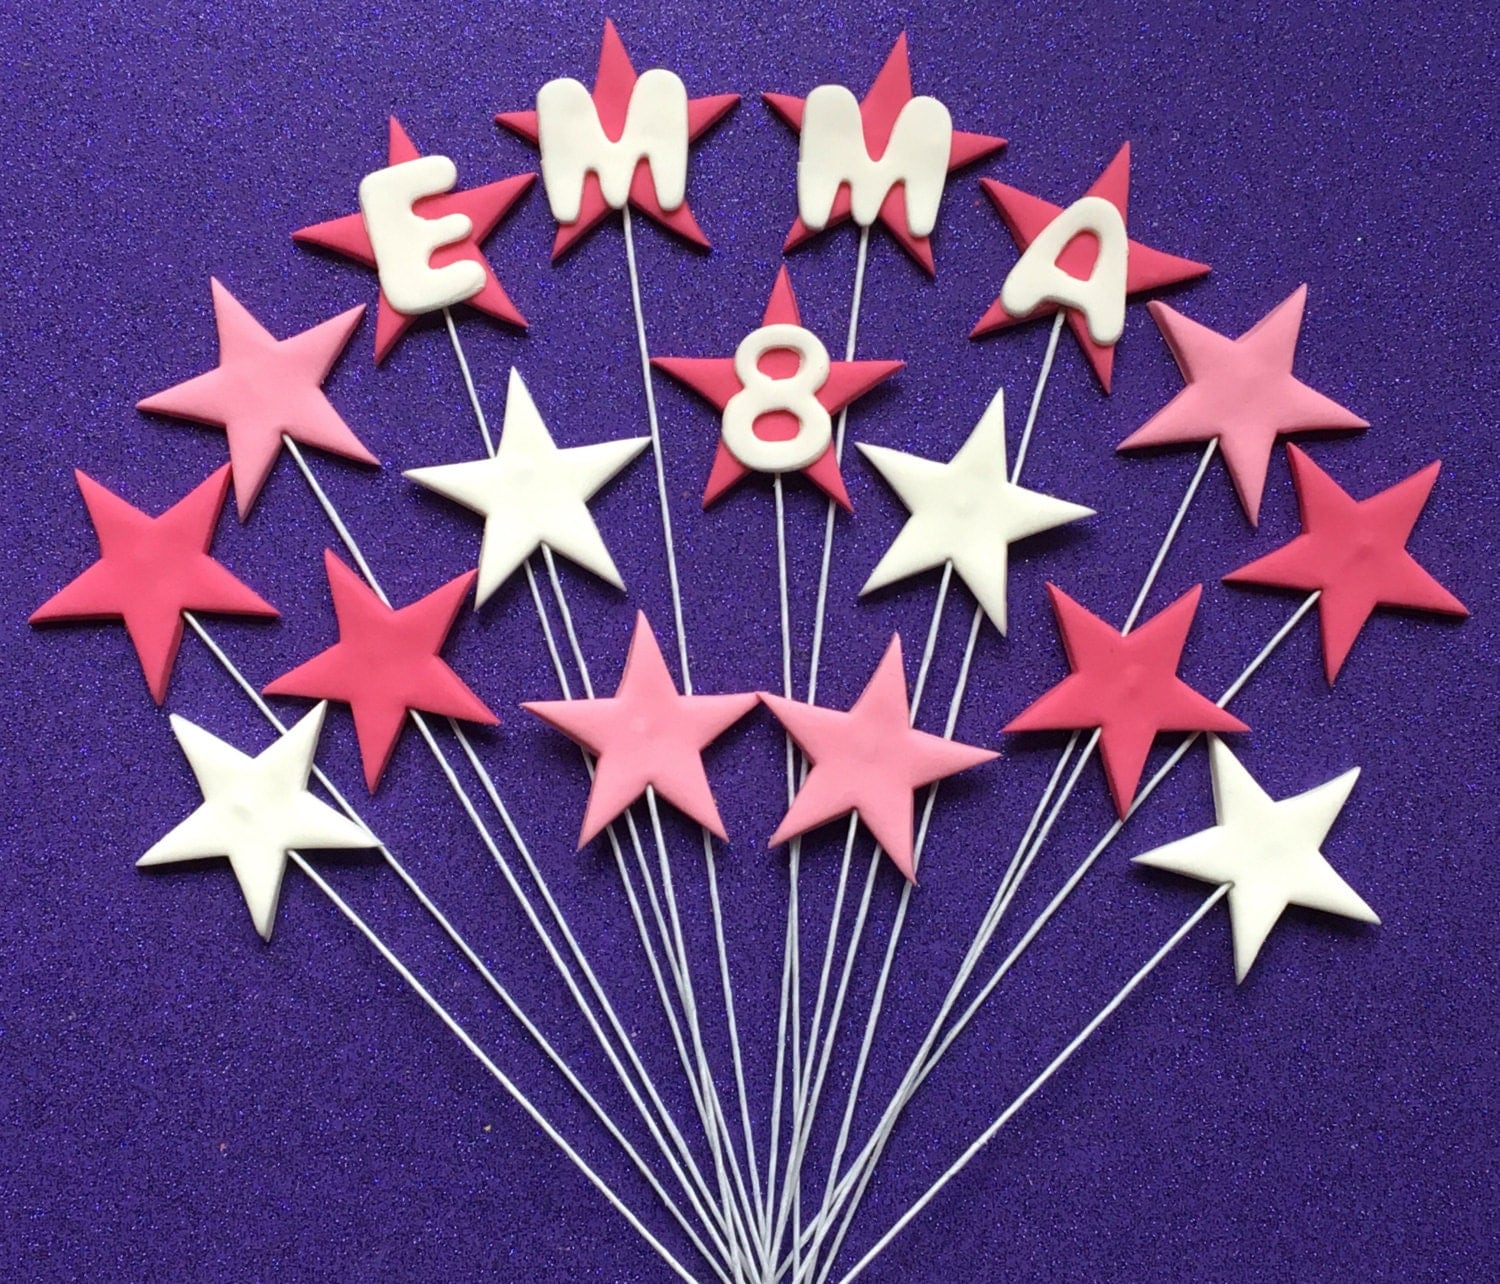 Edible Cake Decorations Stars : Edible fondant STARS on wire cake toppers. Birthday cake